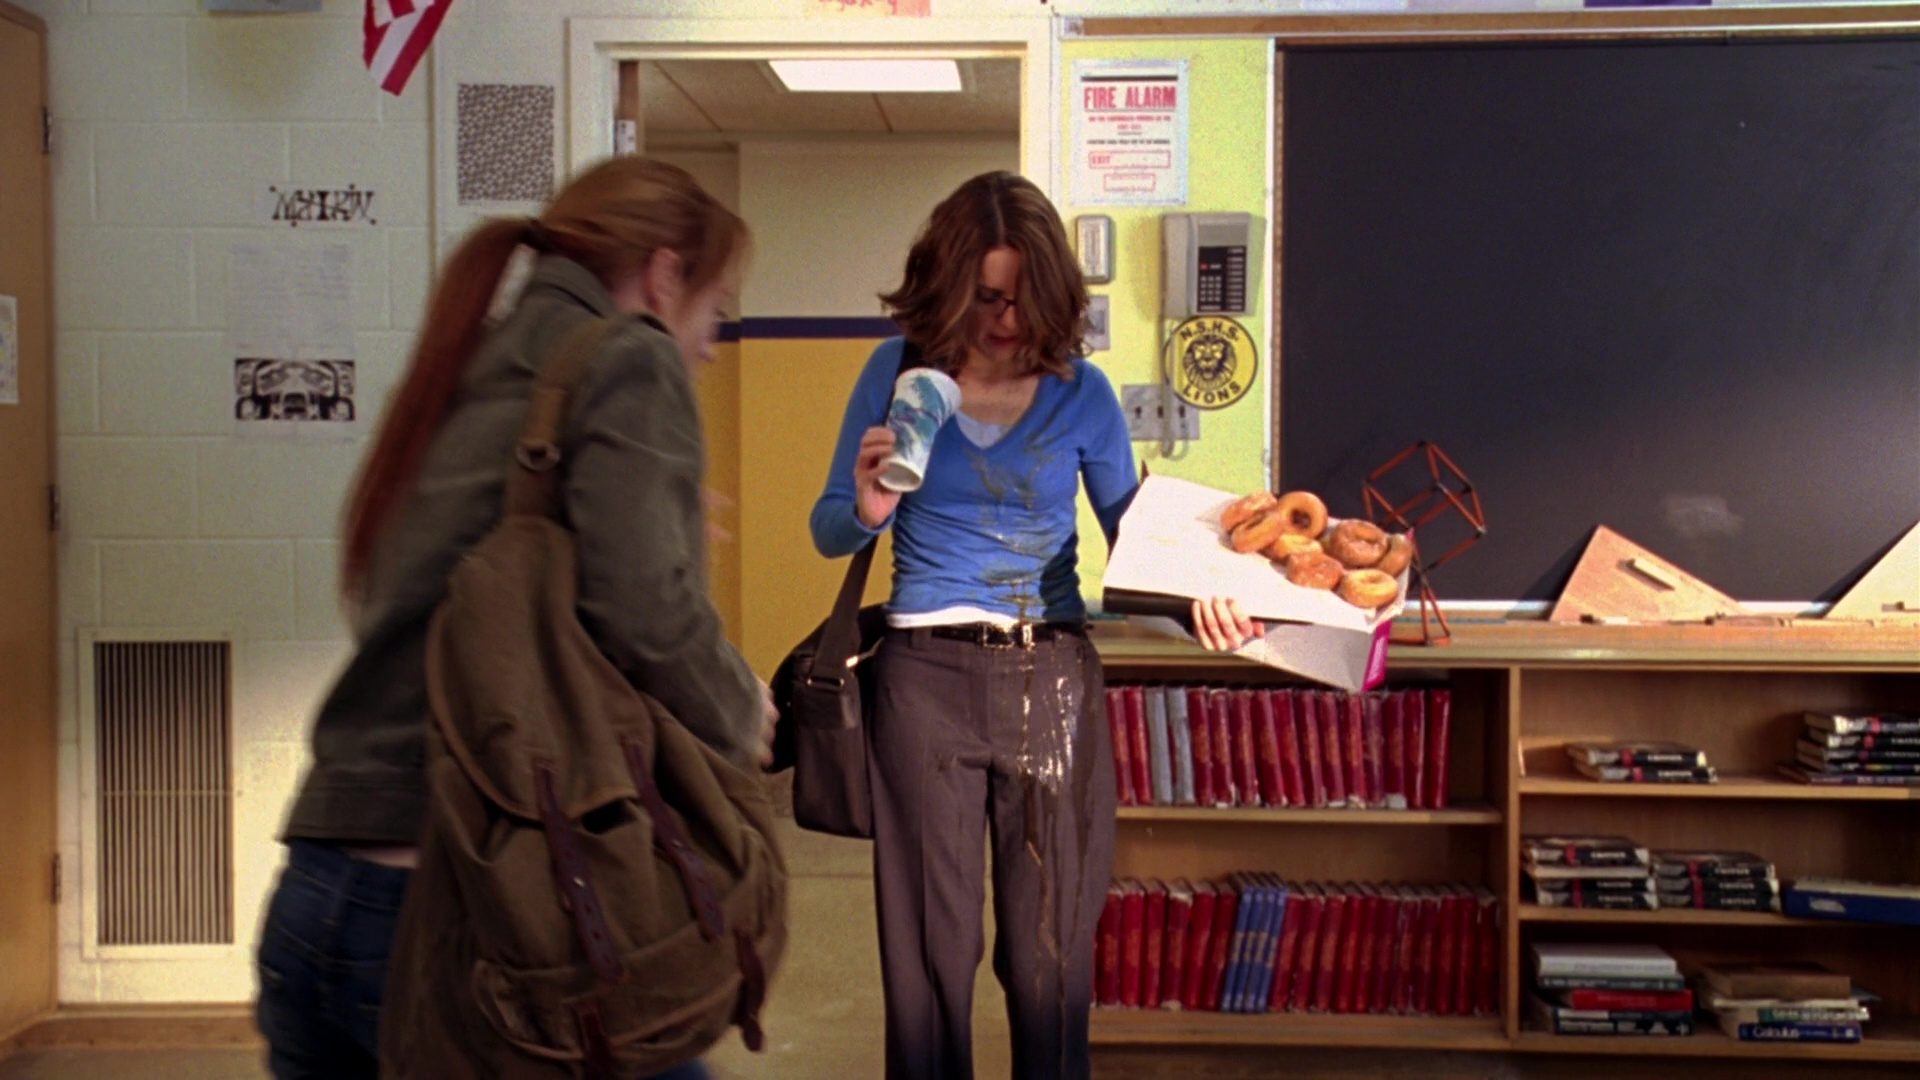 Dunkin Donuts Tina Fey In Mean Girls 2004 Movie